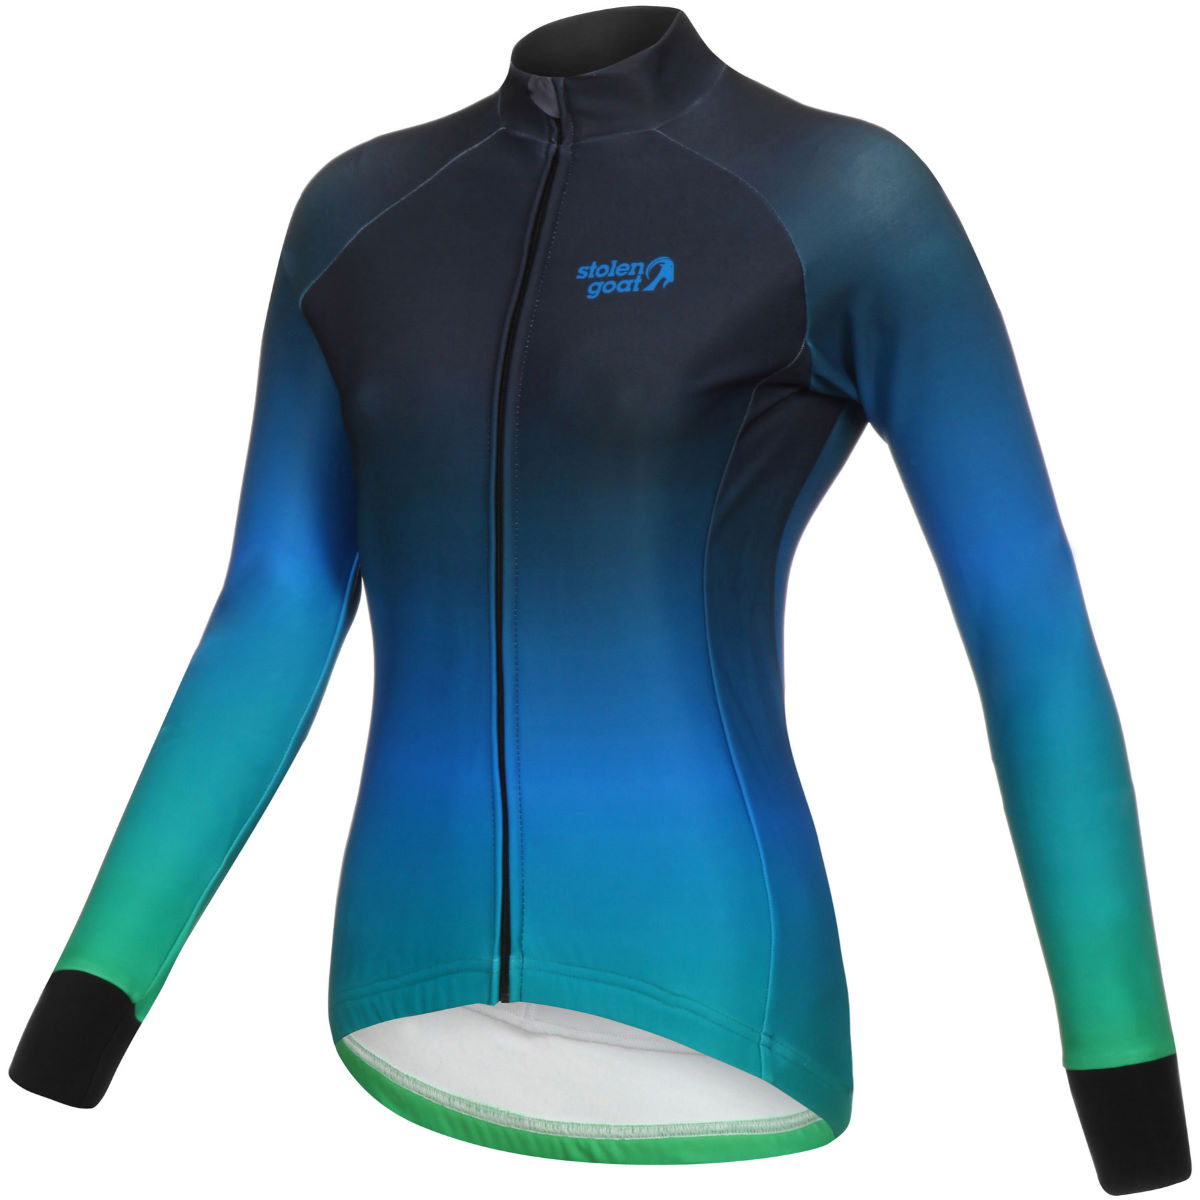 Maillot Femme Stolen Goat Orkaan Everyday (manches longues) - L